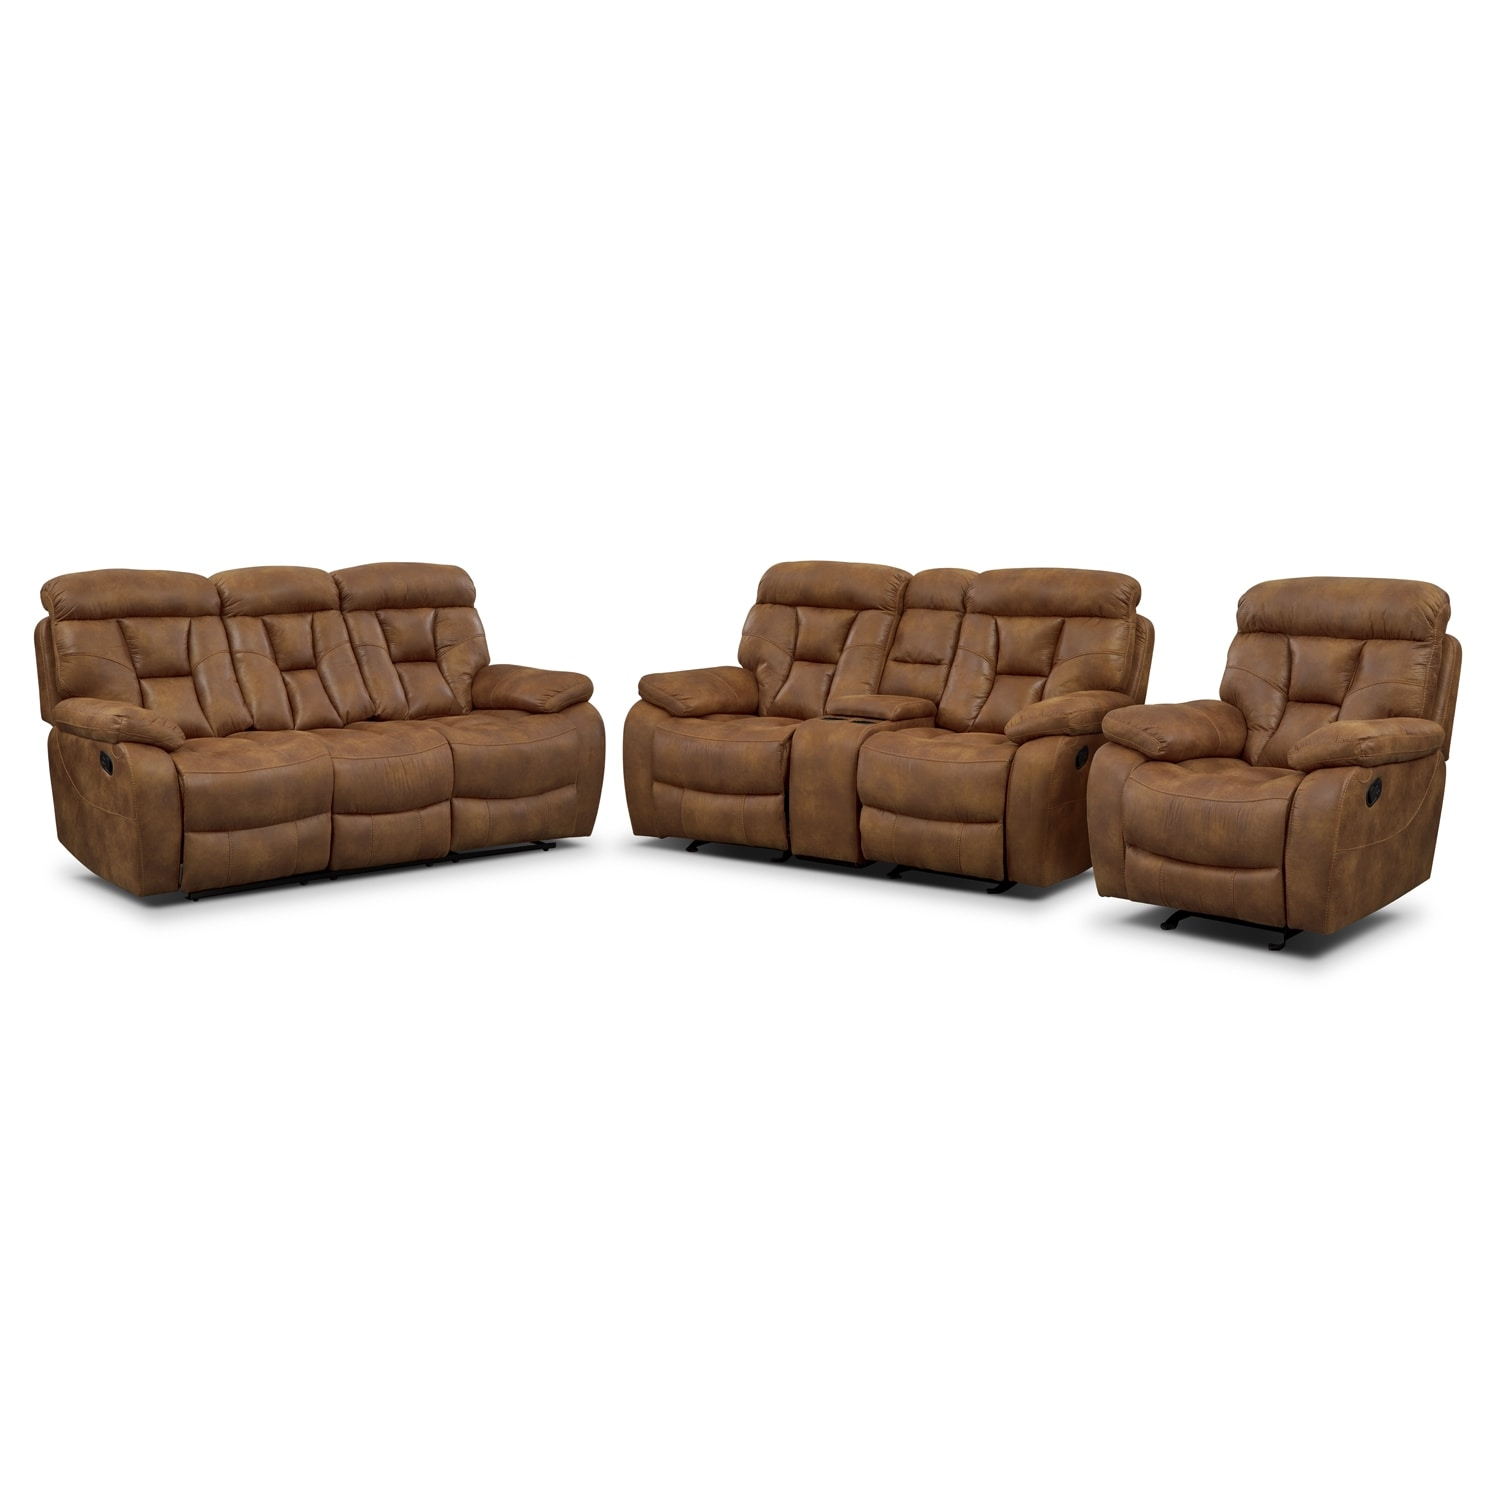 Dakota reclining sofa gliding loveseat and glider Reclining living room furniture